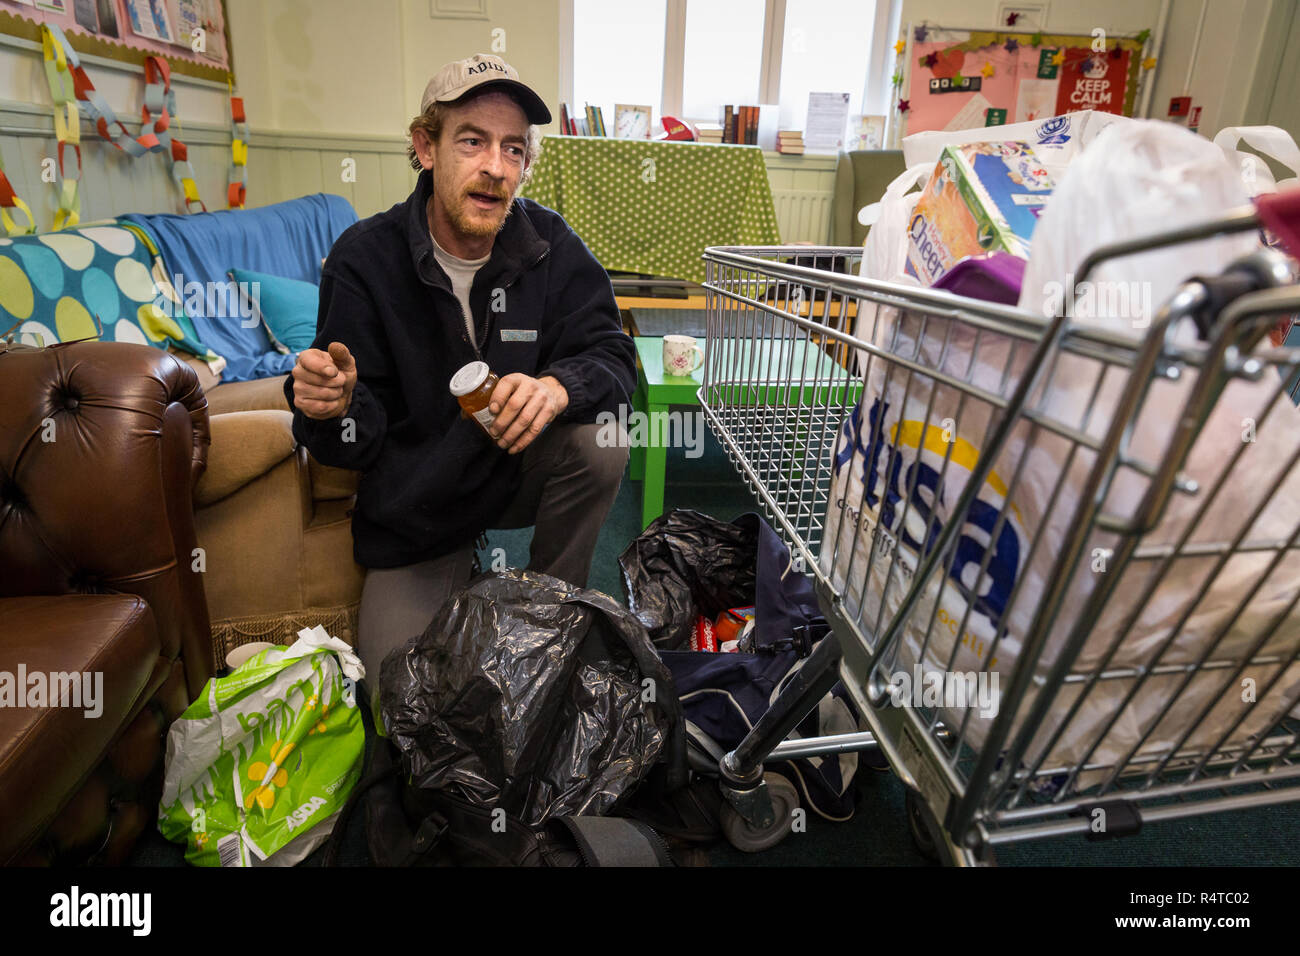 Tony Lee, a needy family man, is looked after by volunteer helpers at the Arnold Food Bank Daybrook Baptist Church's food store in Nottingham and provided with donated food for his family. Stock Photo